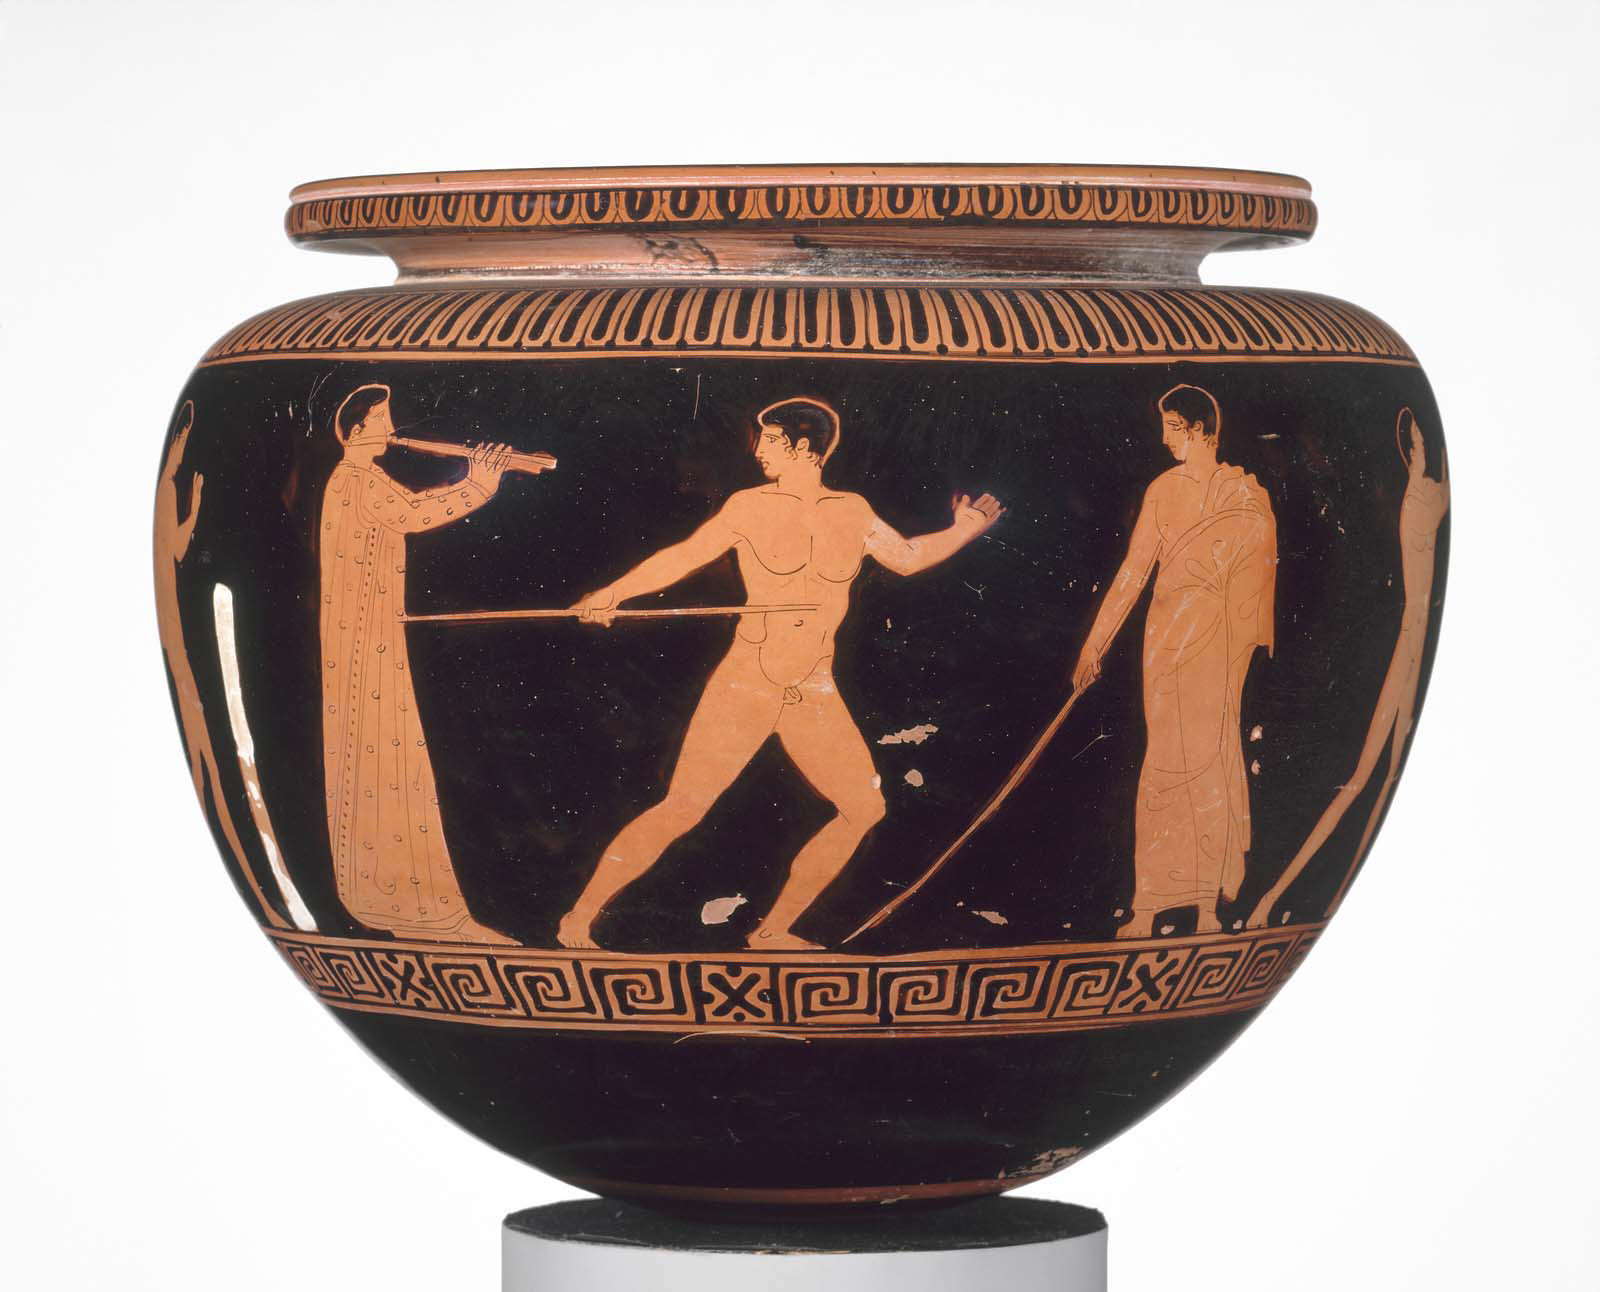 Bowl (dinos) depicting athletes training, Courtesy of the Museum of Fine Arts, Boston